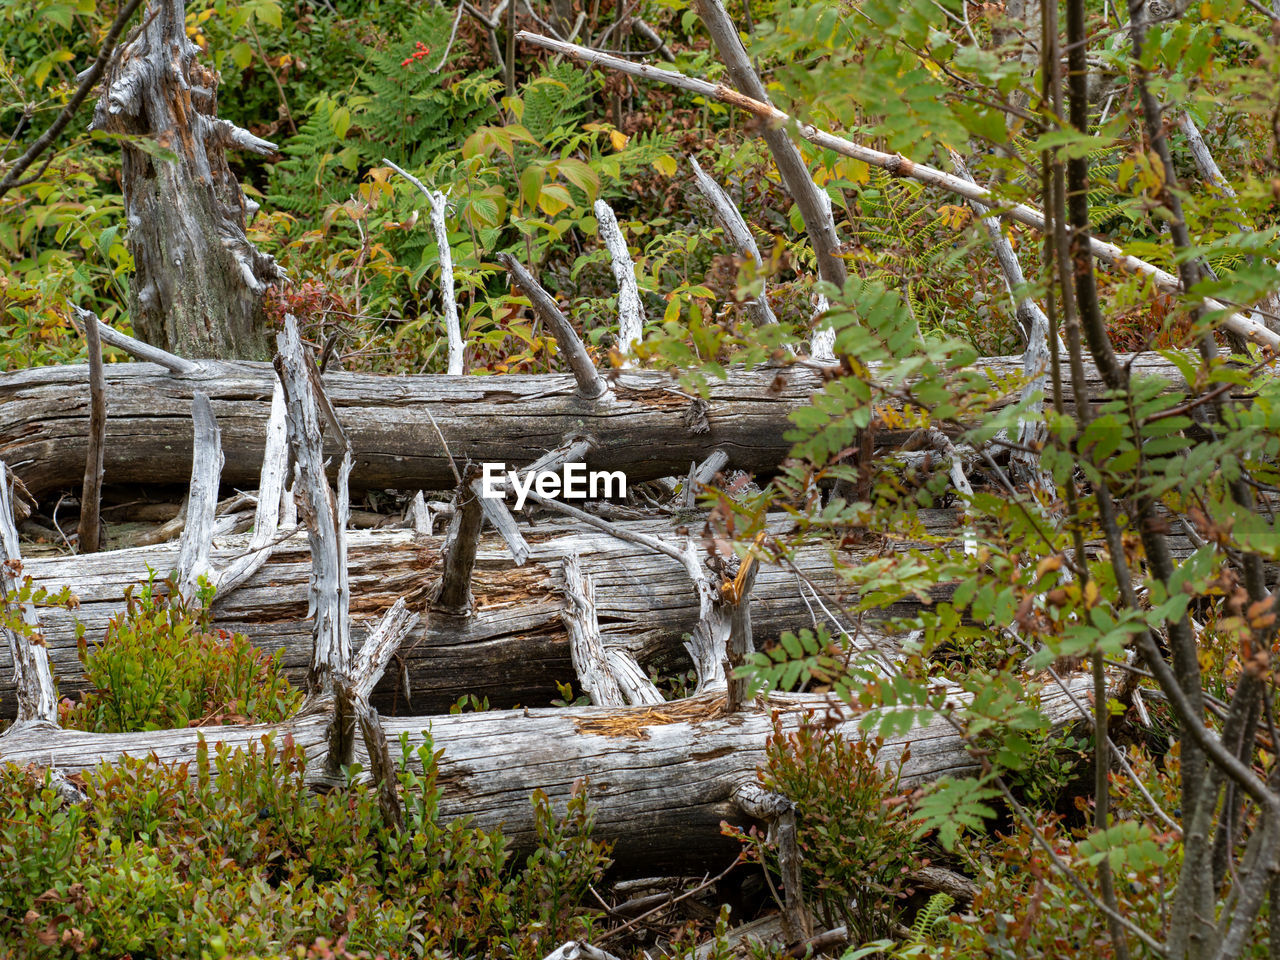 tree, plant, forest, nature, land, tranquility, day, wood - material, no people, growth, tree trunk, wood, trunk, root, water, log, outdoors, beauty in nature, timber, woodland, dead plant, driftwood